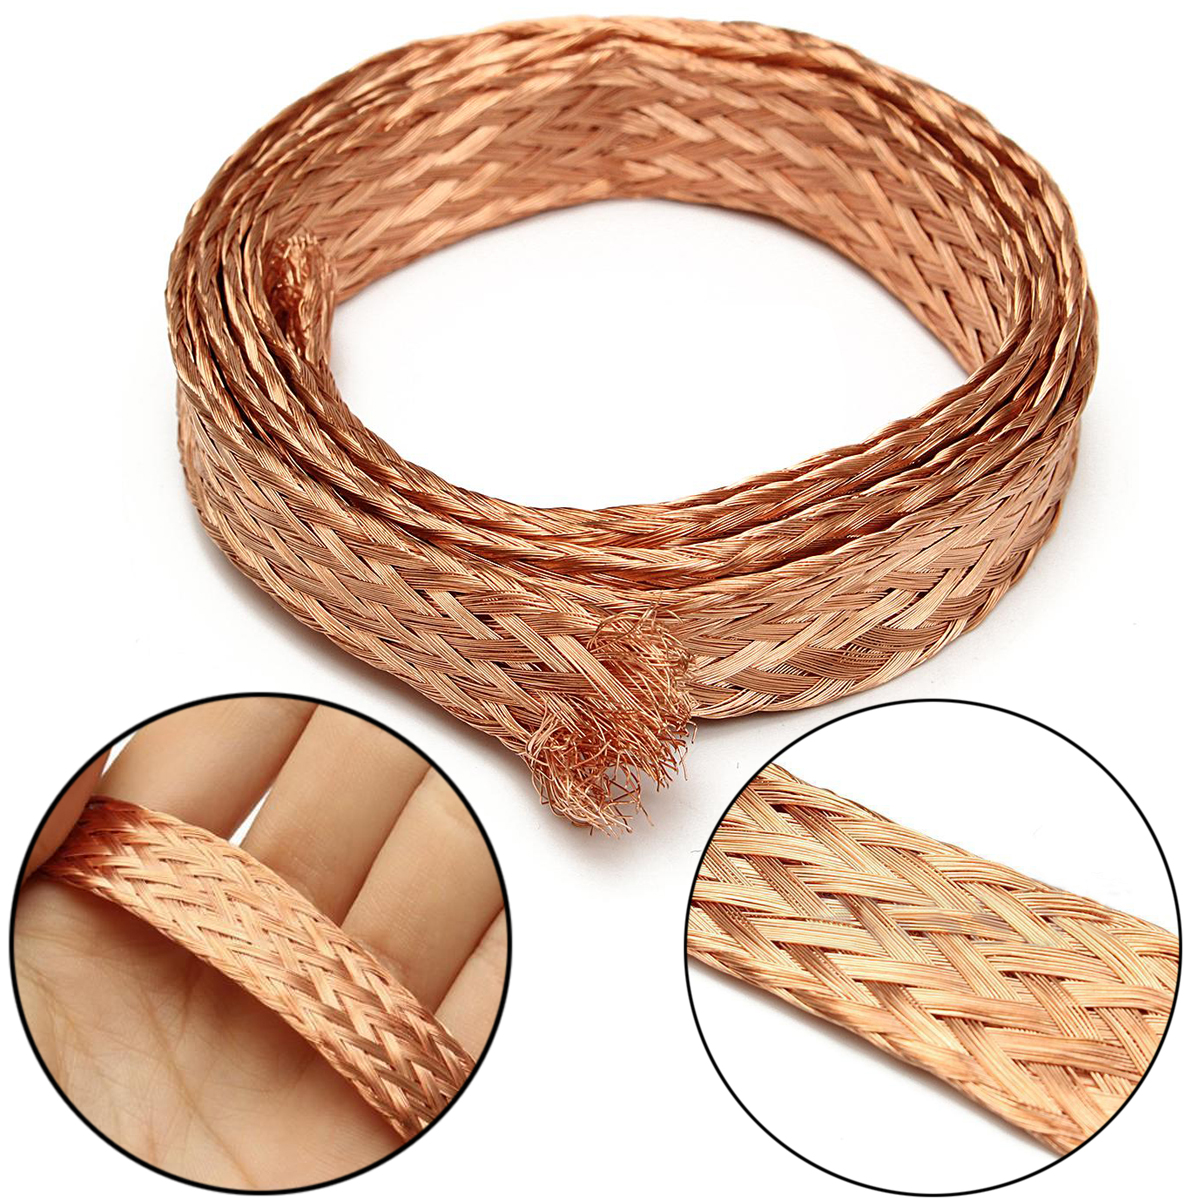 1m/3.3 Ft Flat Copper Braid Cable 11mm Width Uninsulated Bare Copper Braid Wire Ground Lead  1m 15mm flat tinned copper braid sleeve screening tubular cable diy